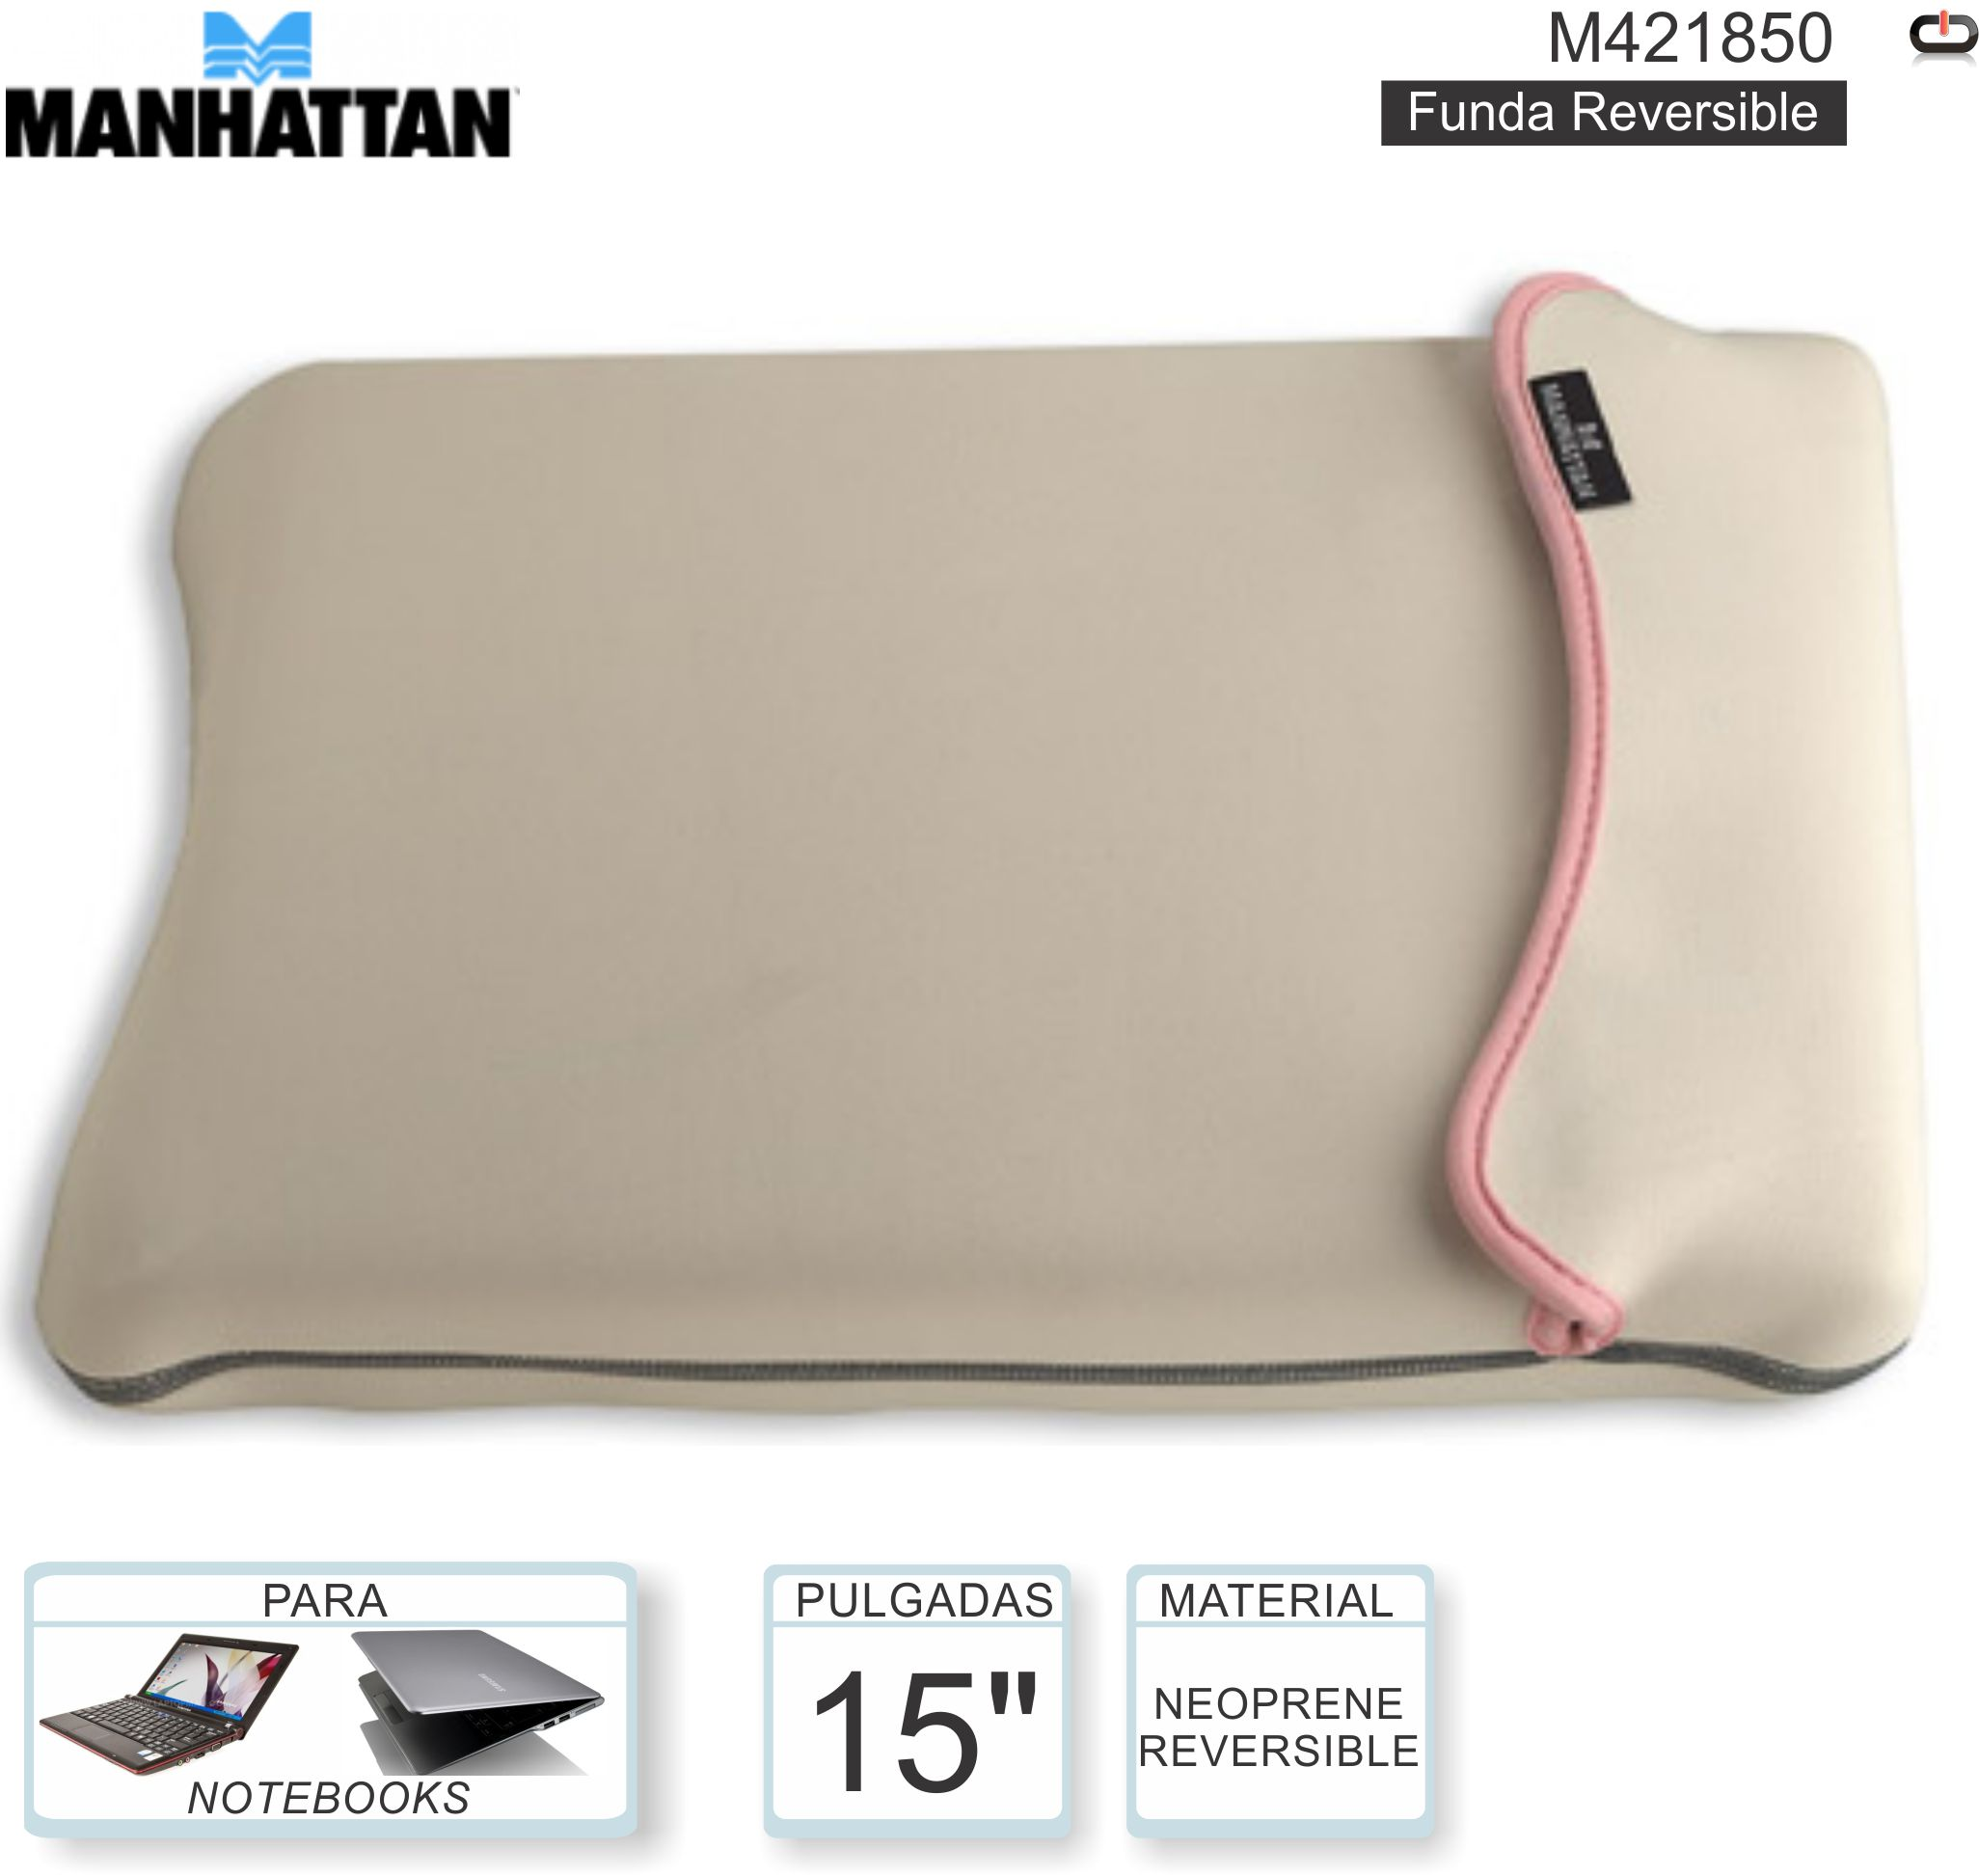 FUNDA 15P MANHATTAN M421850 REVERSIBLE